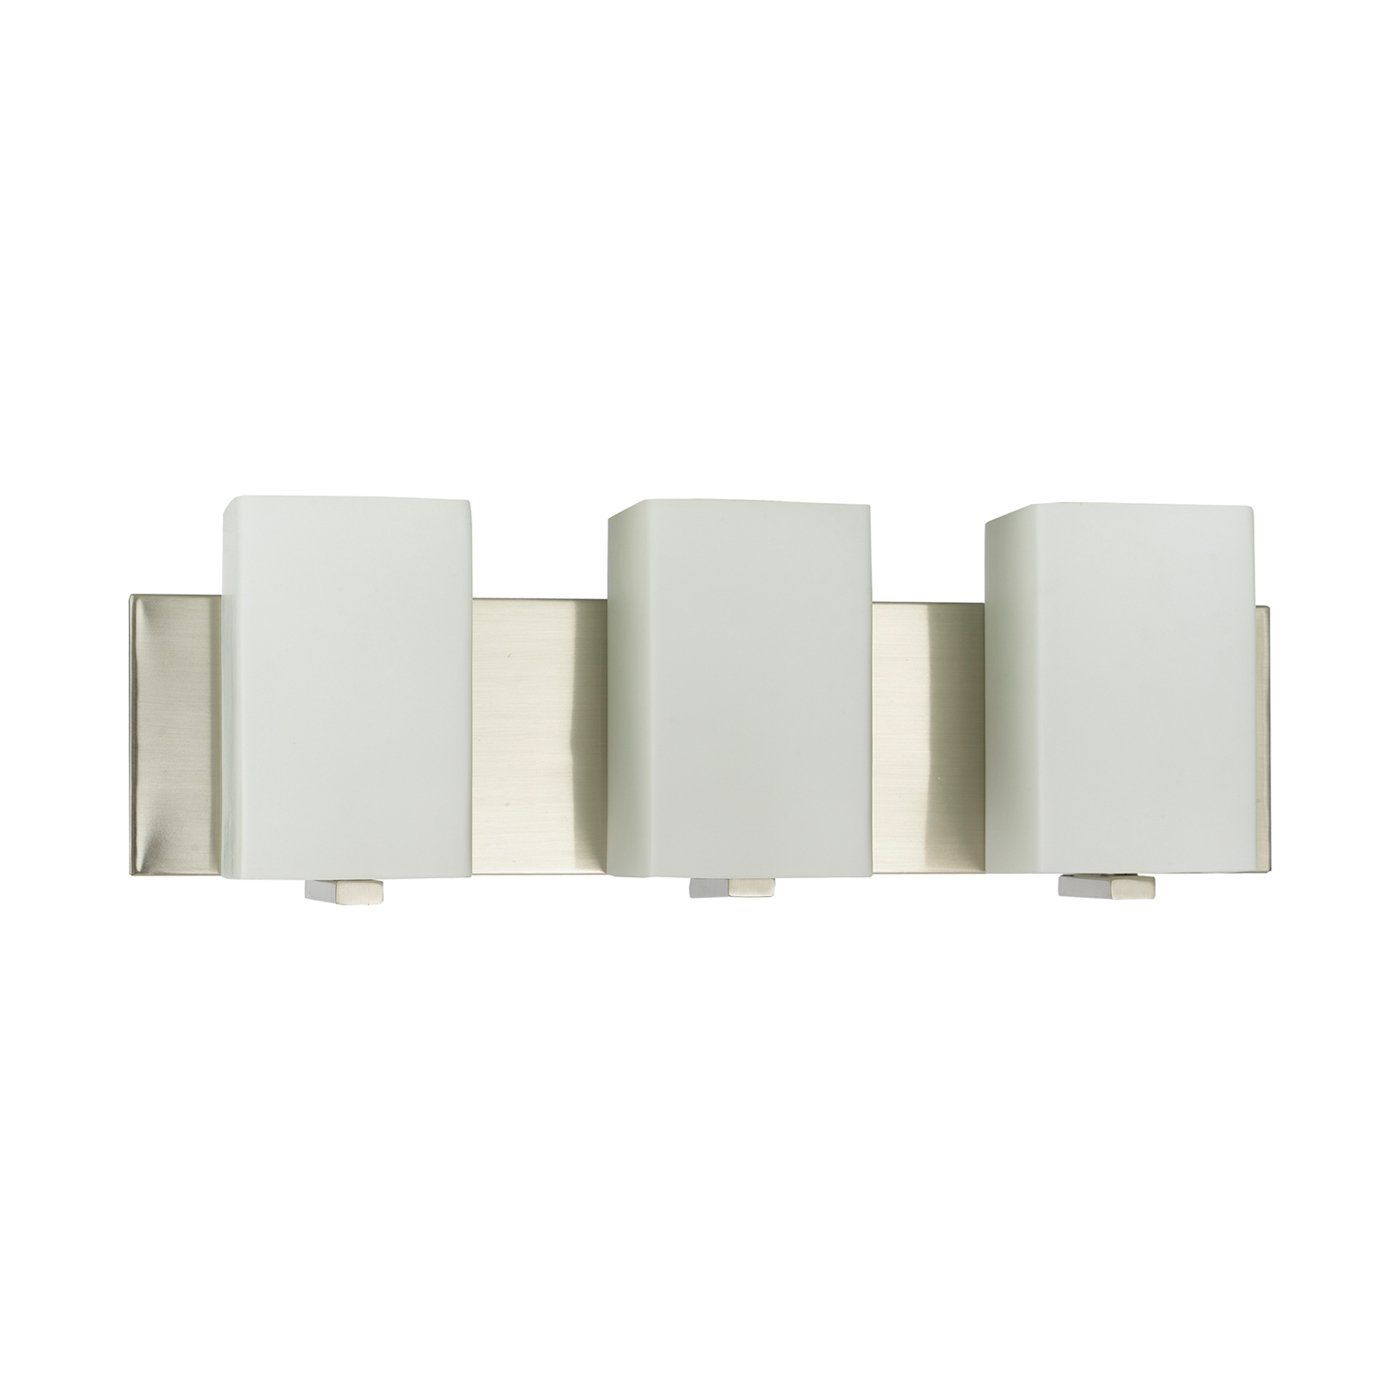 Amlite Lighting Wb Bn Hudson Vanity At Lowe Canada Find Our Selection Of Bathroom The Lowest Price Guaranteed With Match